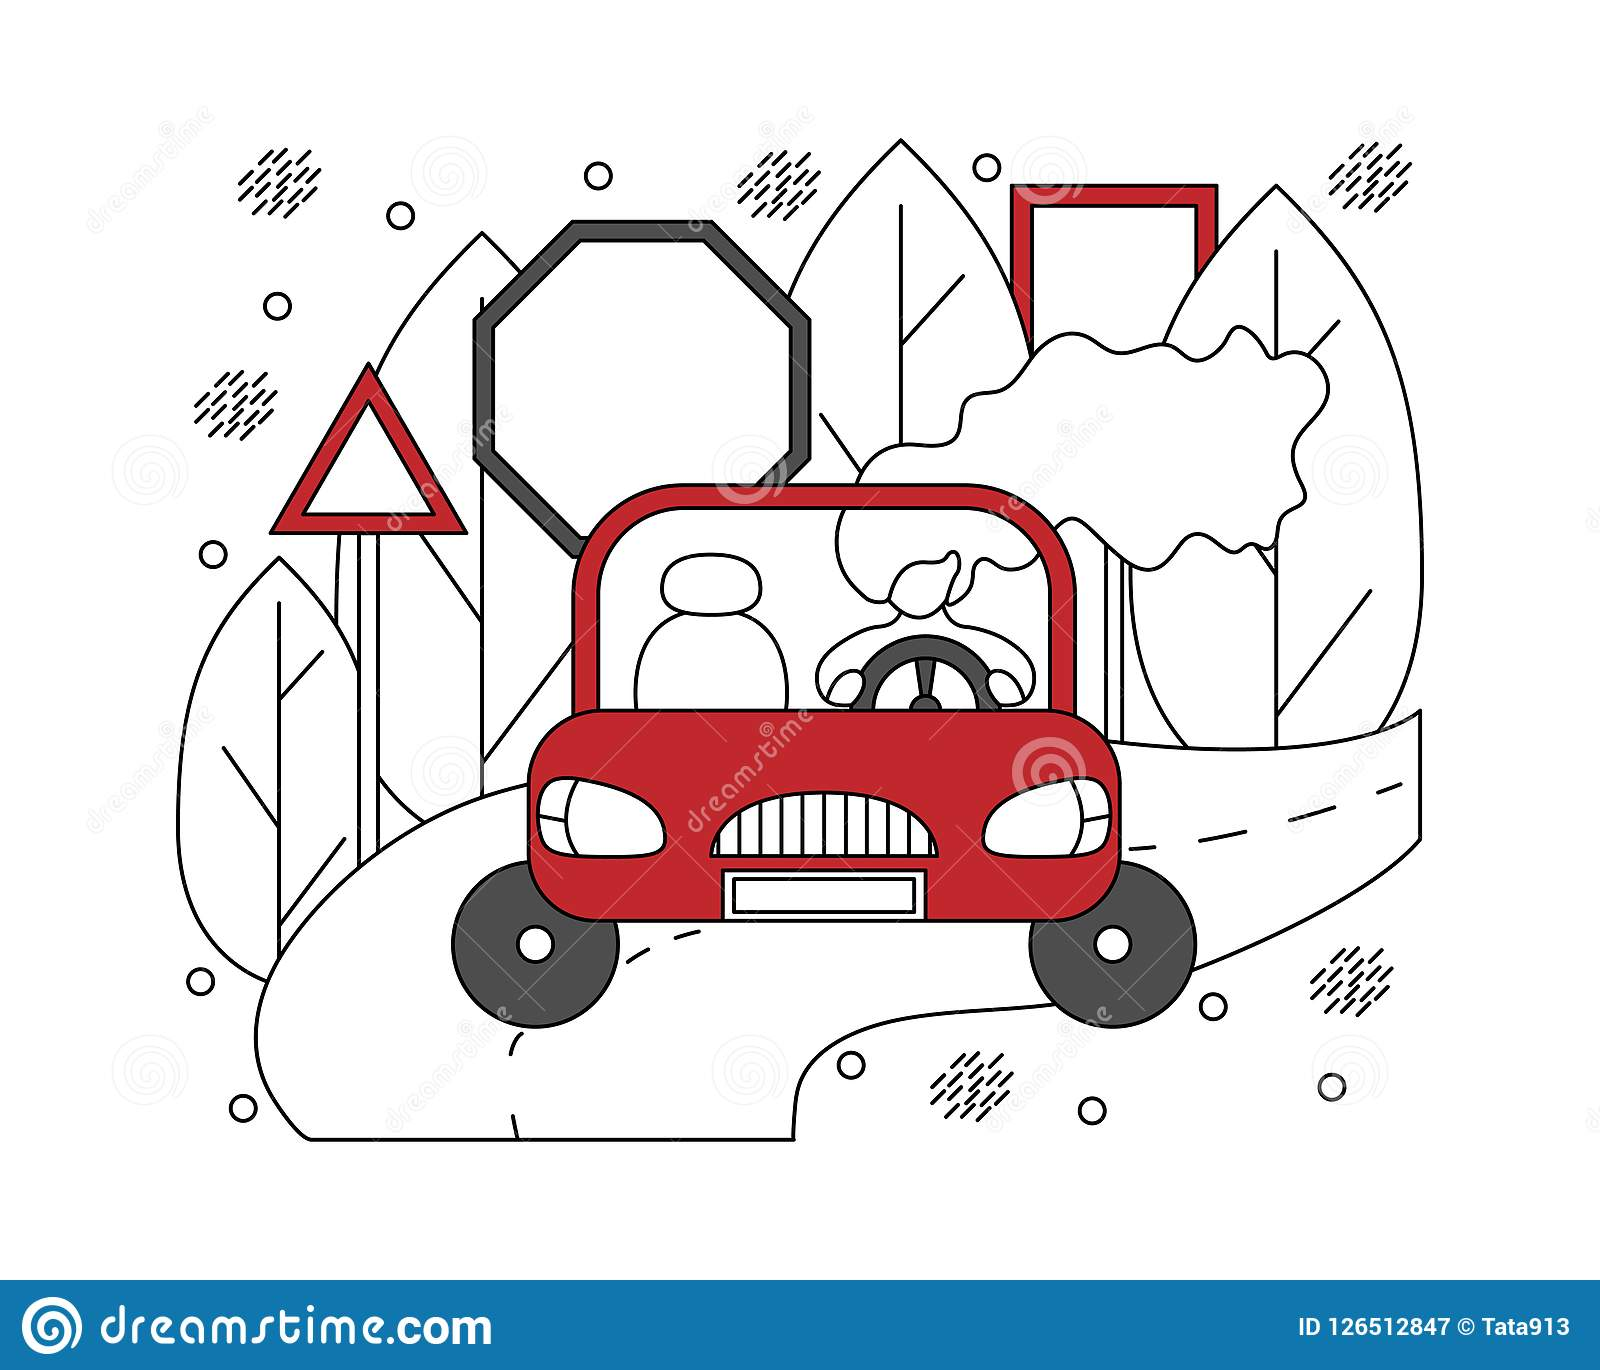 Flat illustration in lines with girl in a car. Automotive concep